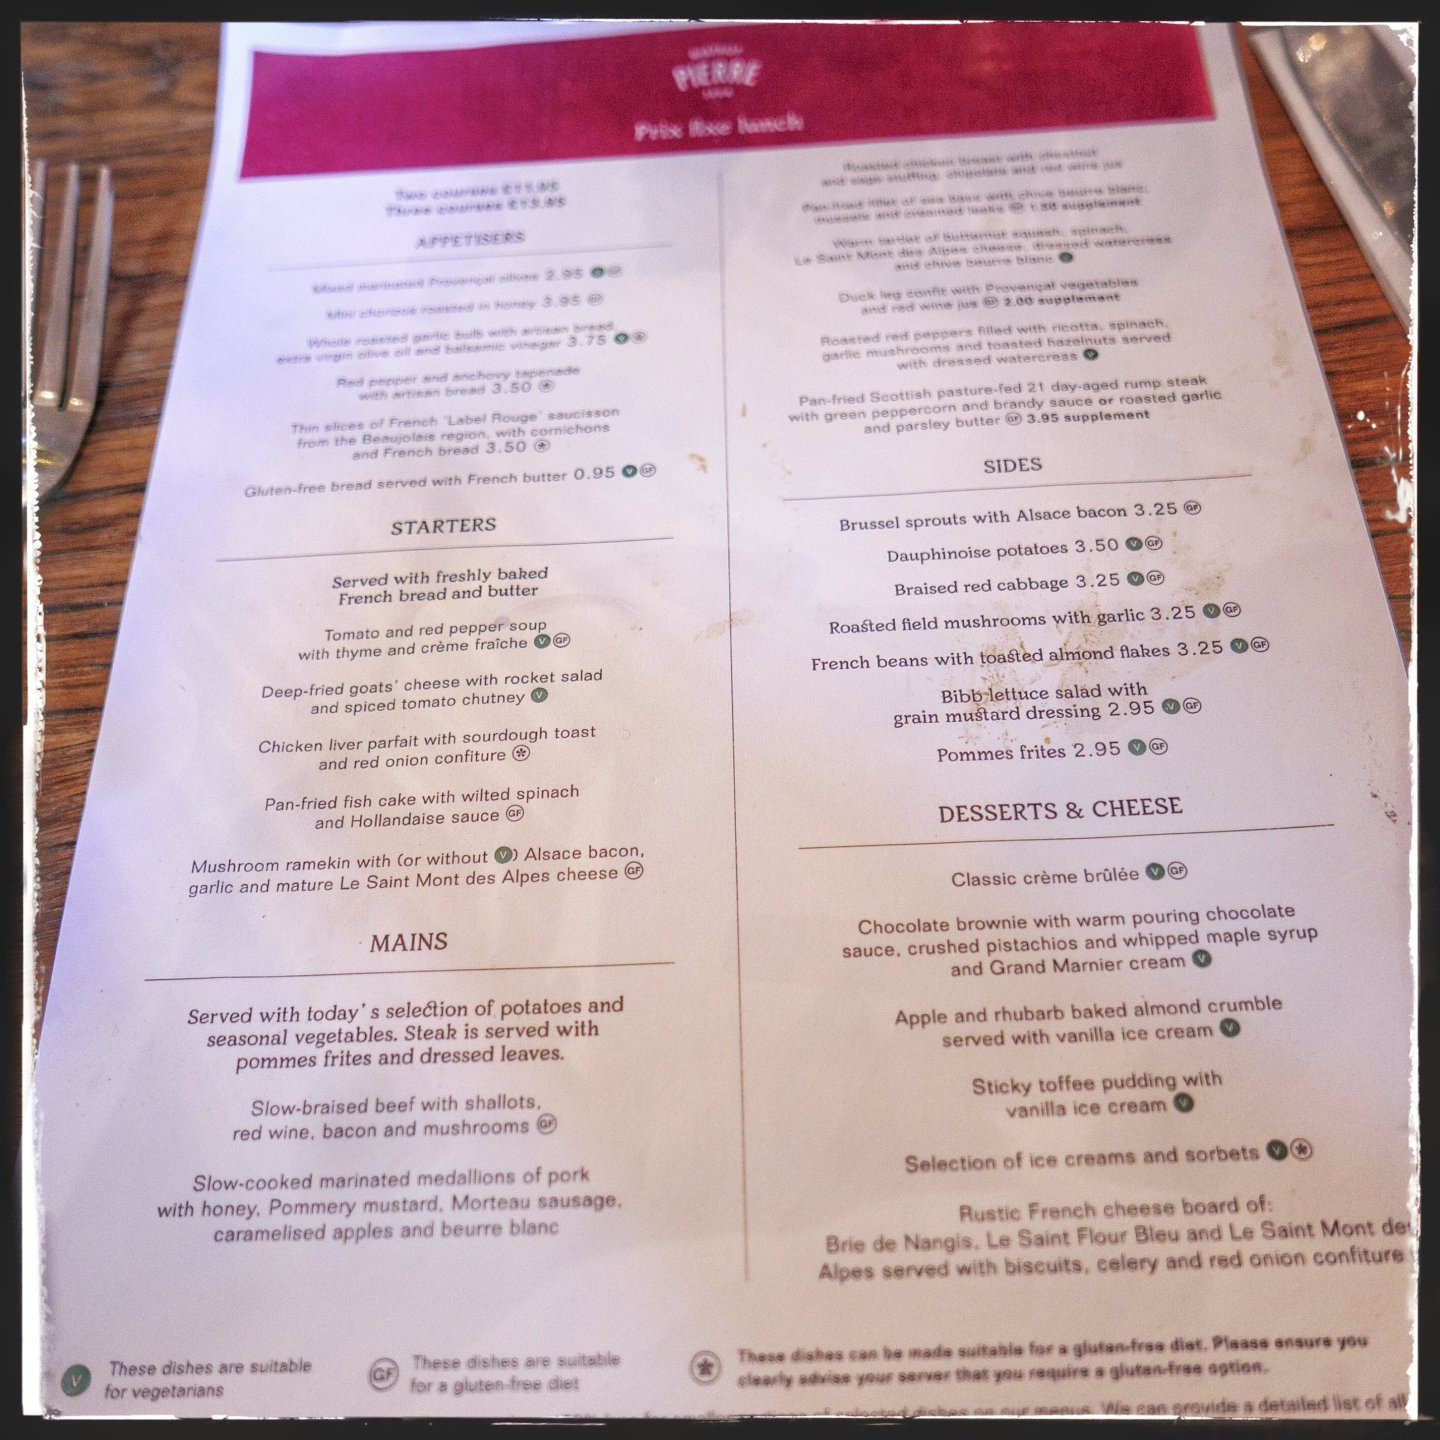 Prix Fixe Lunch menu at Bistrot Pierre Birmingham